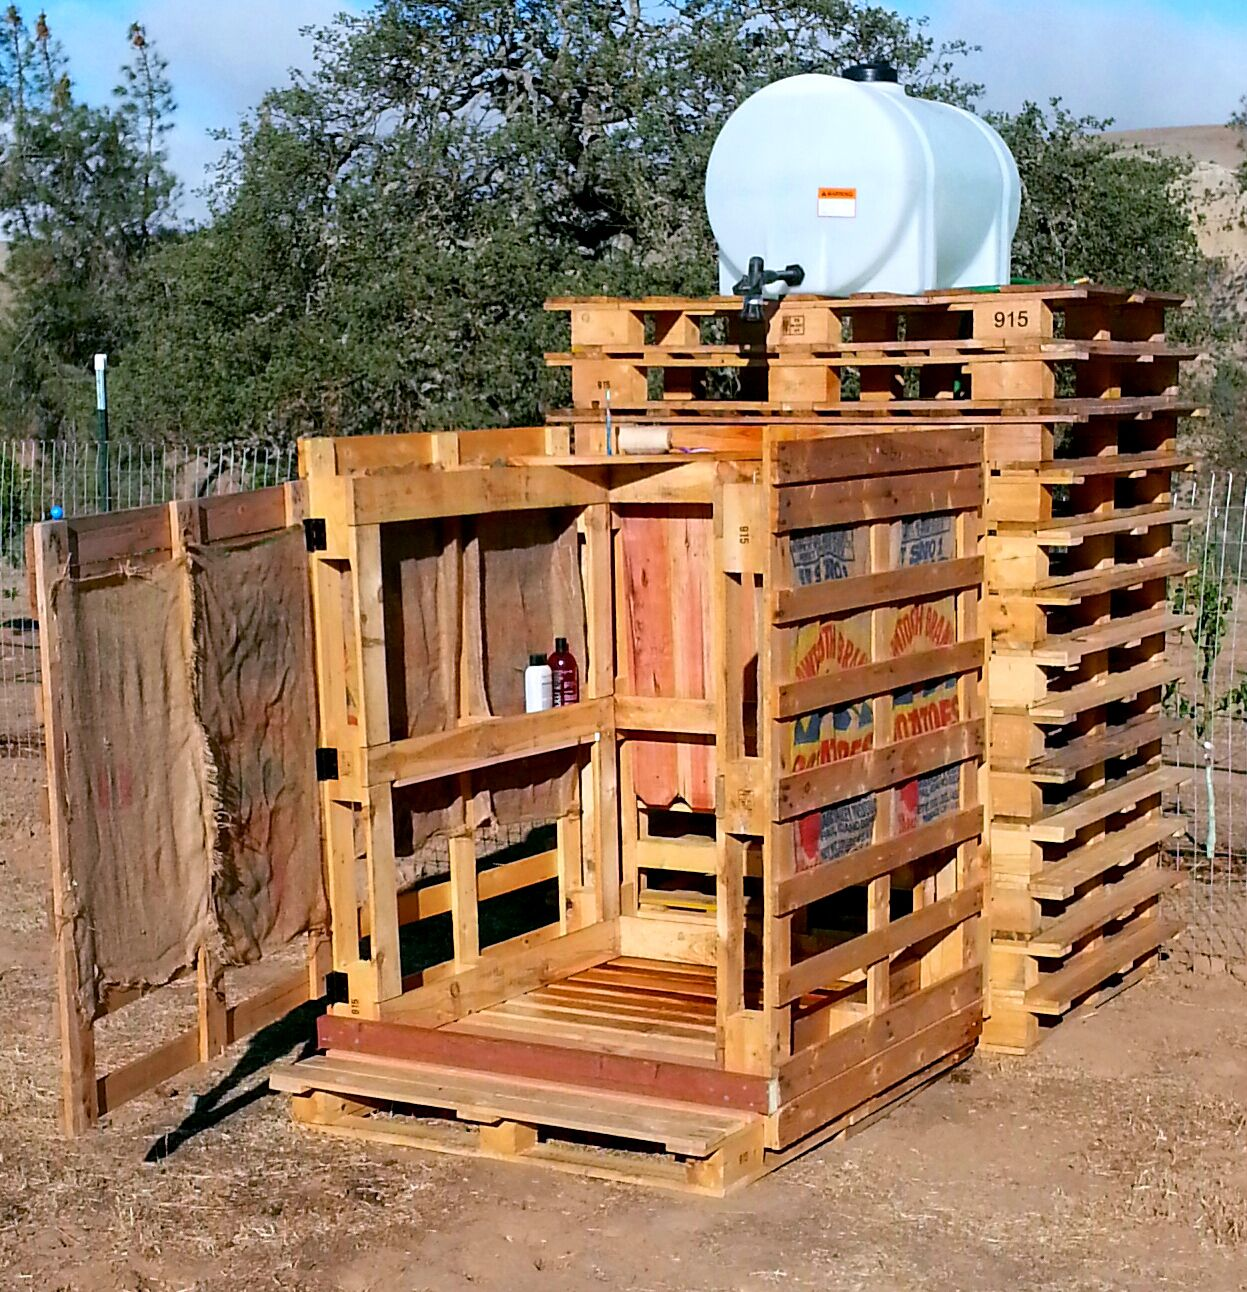 Make An Outdoor Shower Pallets Outdoor Shower Made Of Pallets And Burlap Sacks